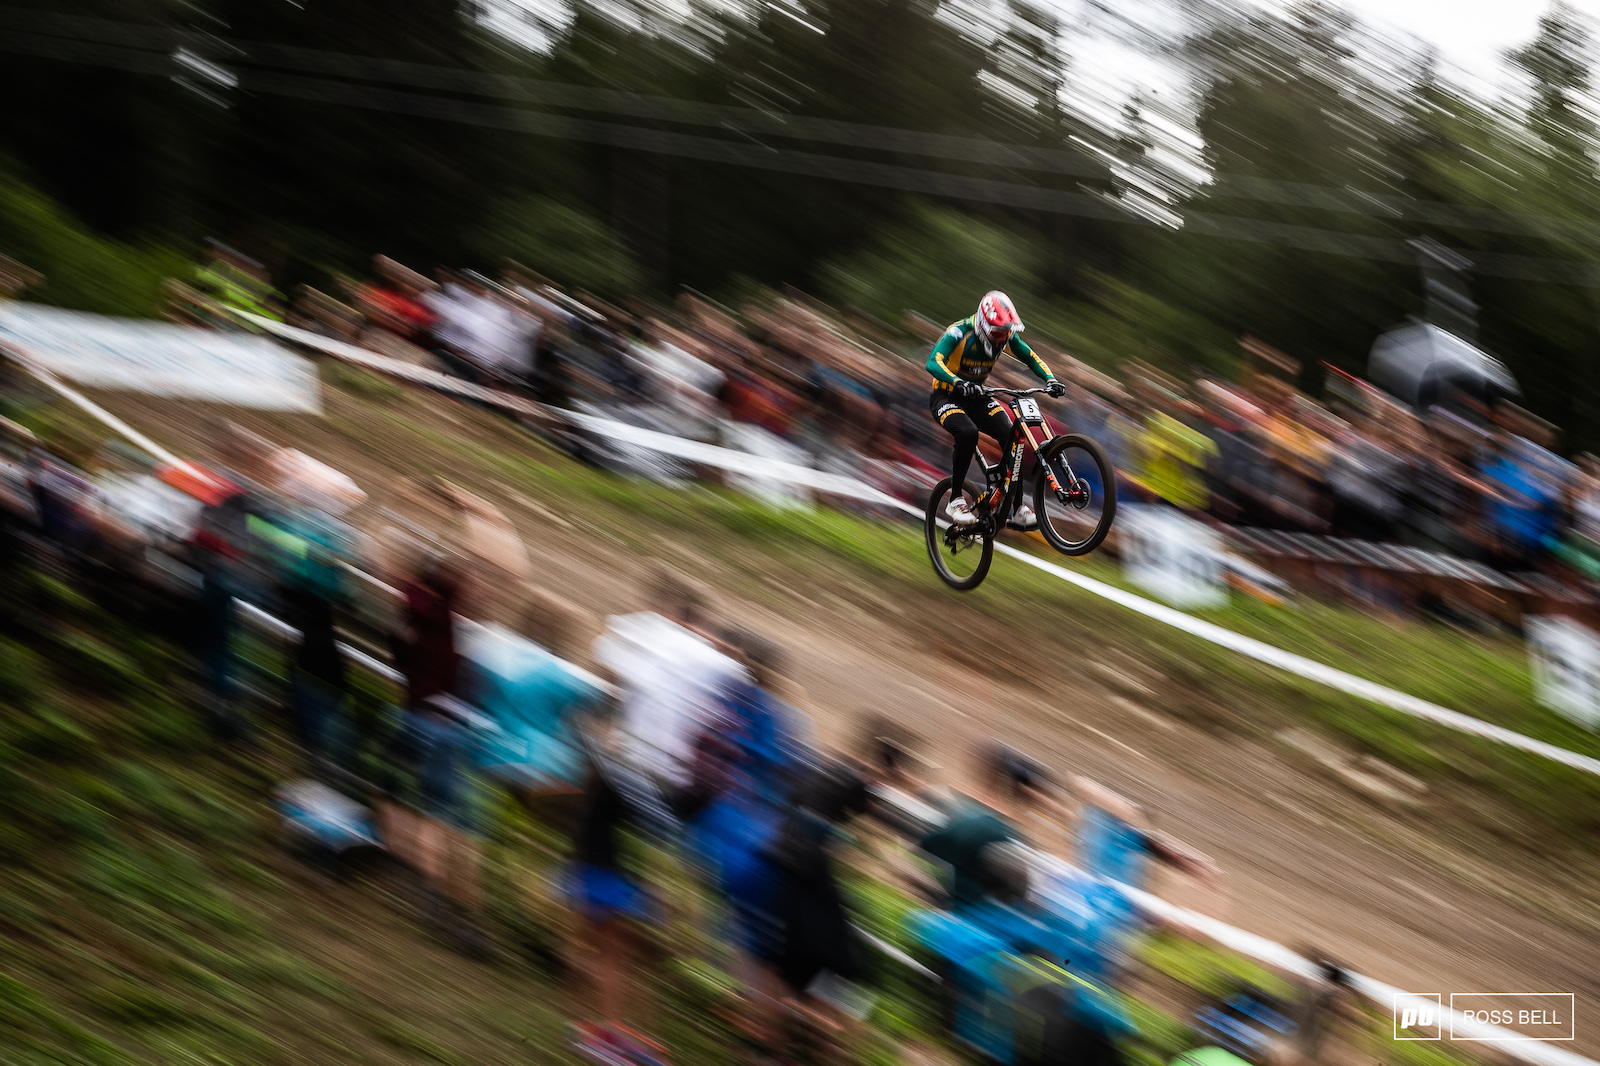 Greg Minnaar launches his way into the finish arena on route to the World title.